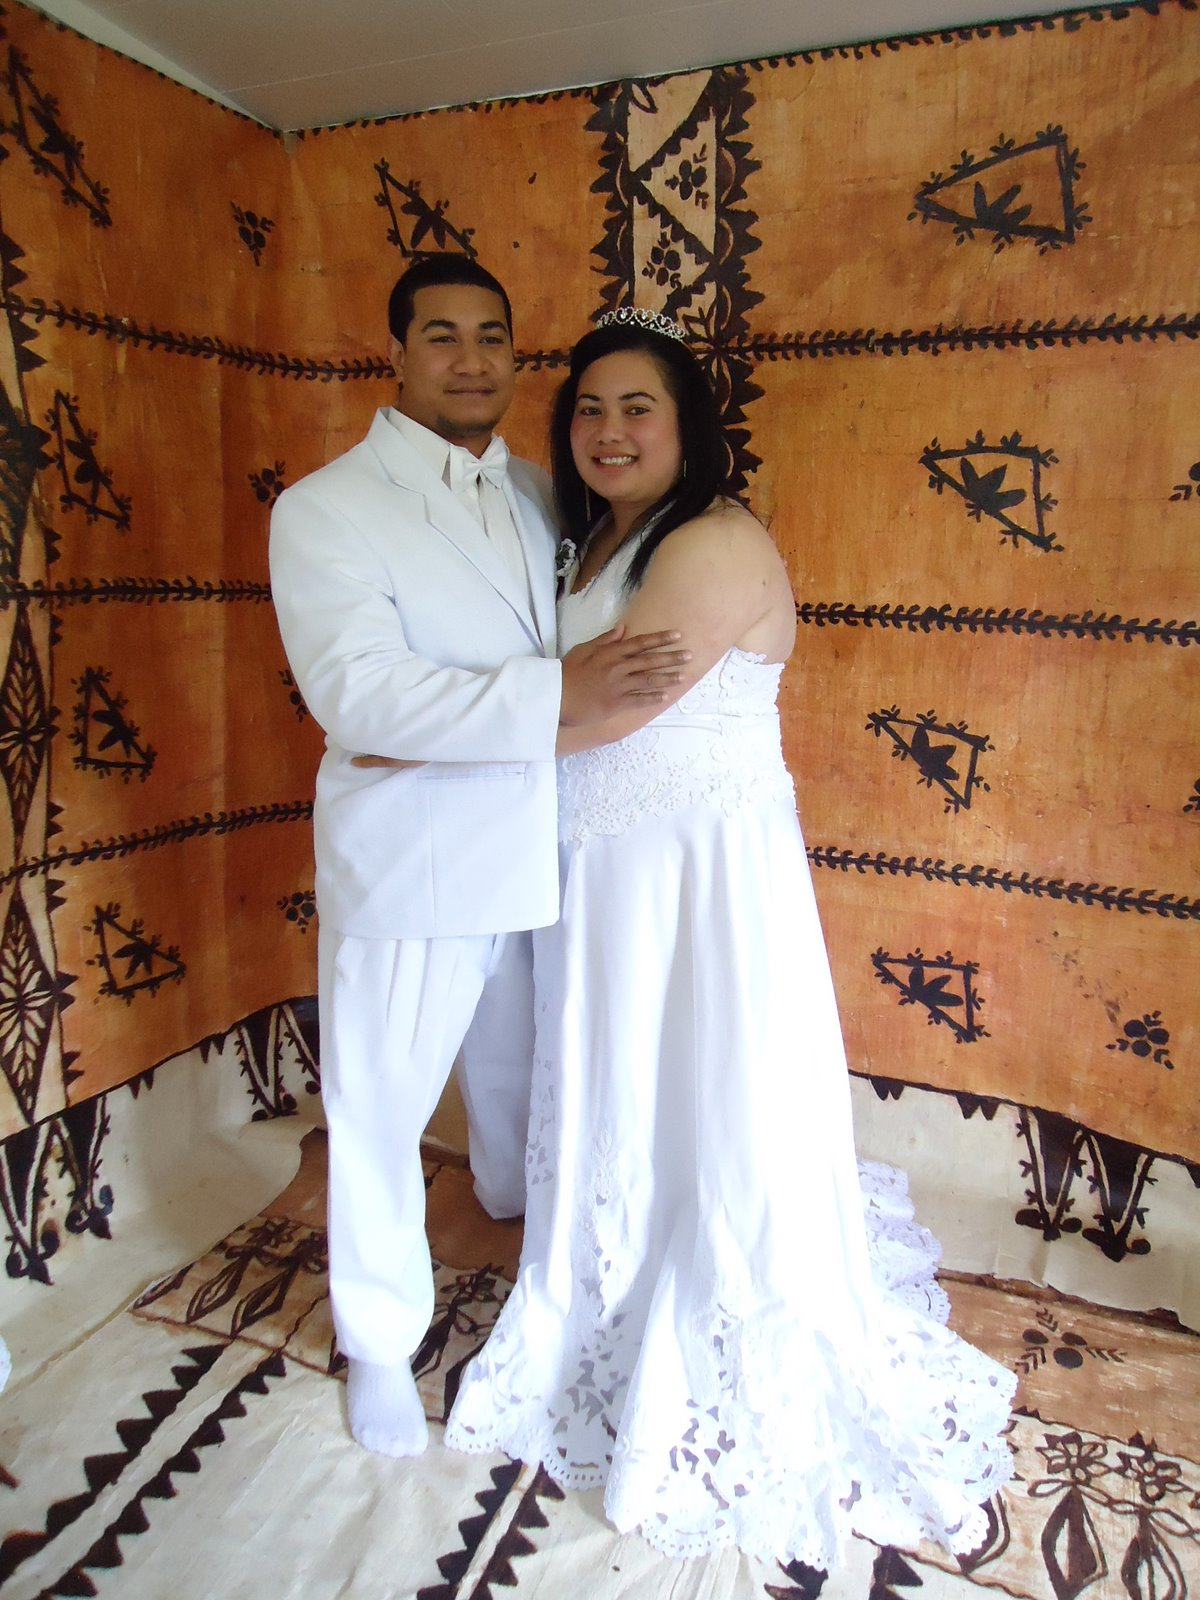 Tonga Traditional Wedding Dress http://auckland-waitakerecelebrant.blogspot.com/2011_09_01_archive.html